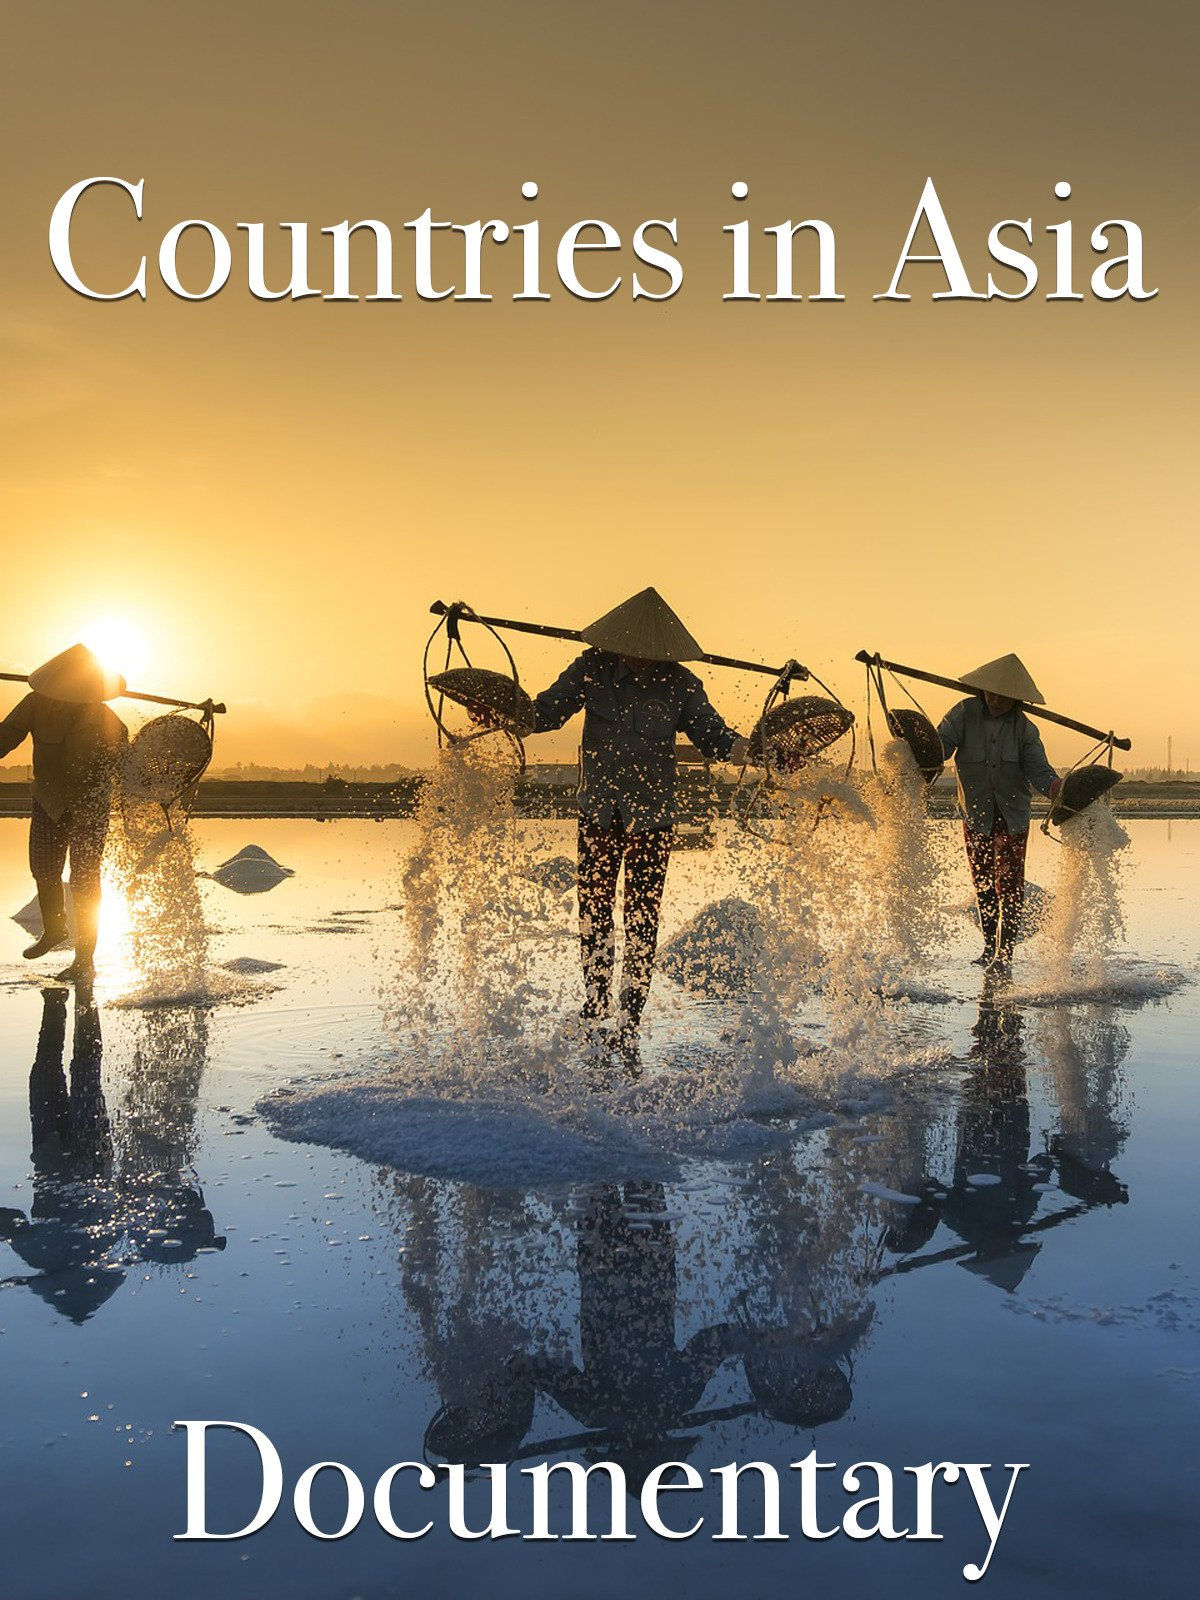 Countries in Asia Documentary